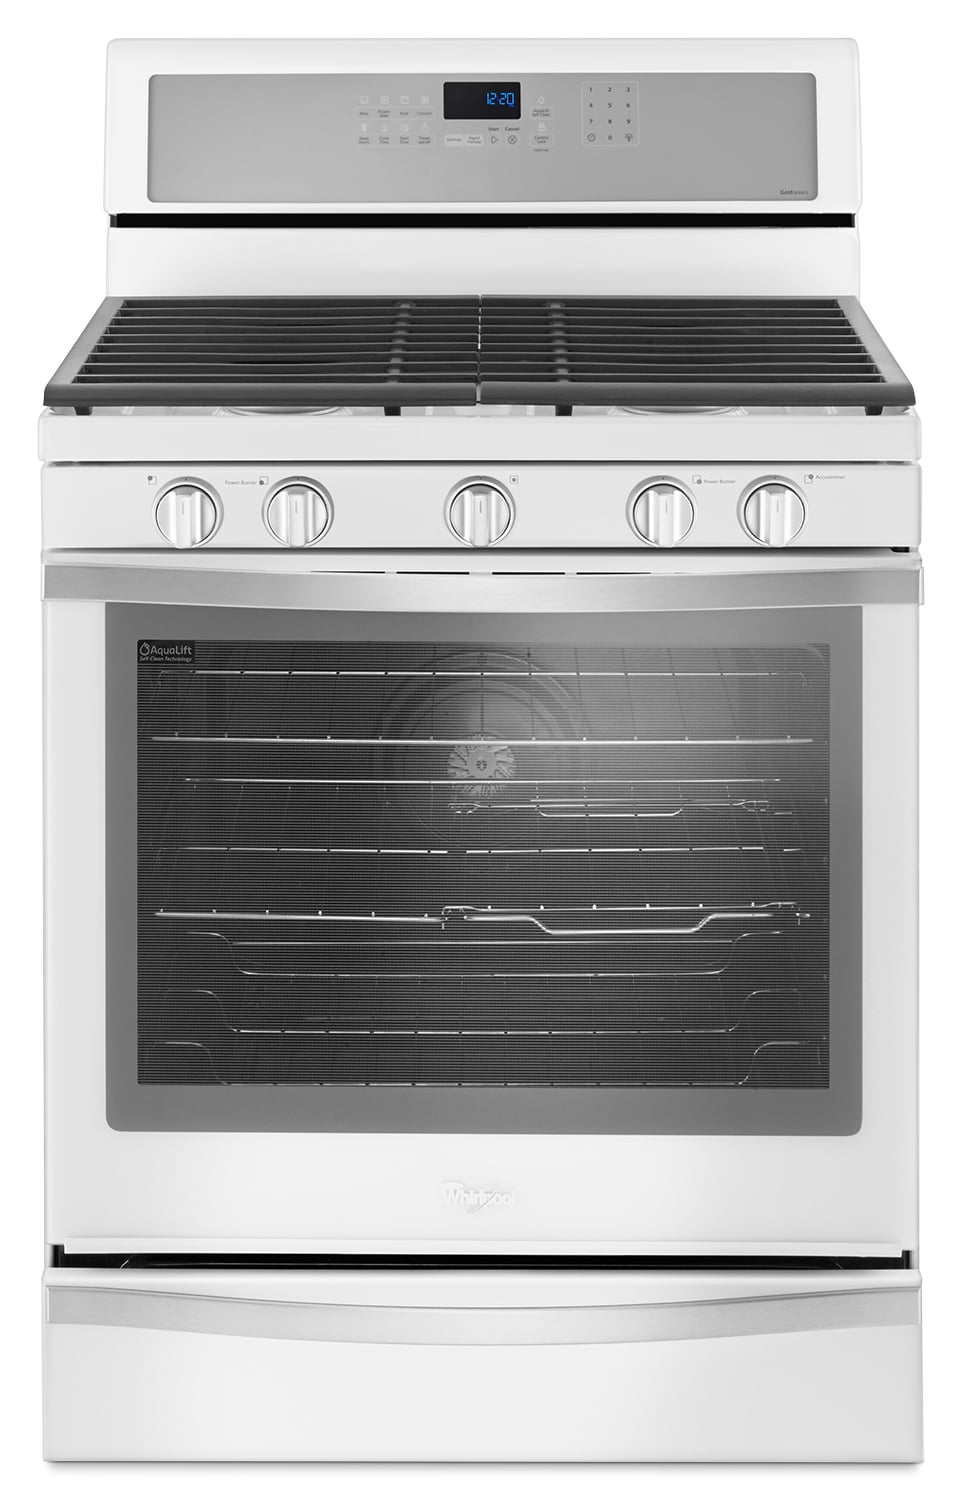 Cooking Products - Whirlpool White Freestanding Gas Range (5.8 Cu. Ft.) - WFG745H0FH